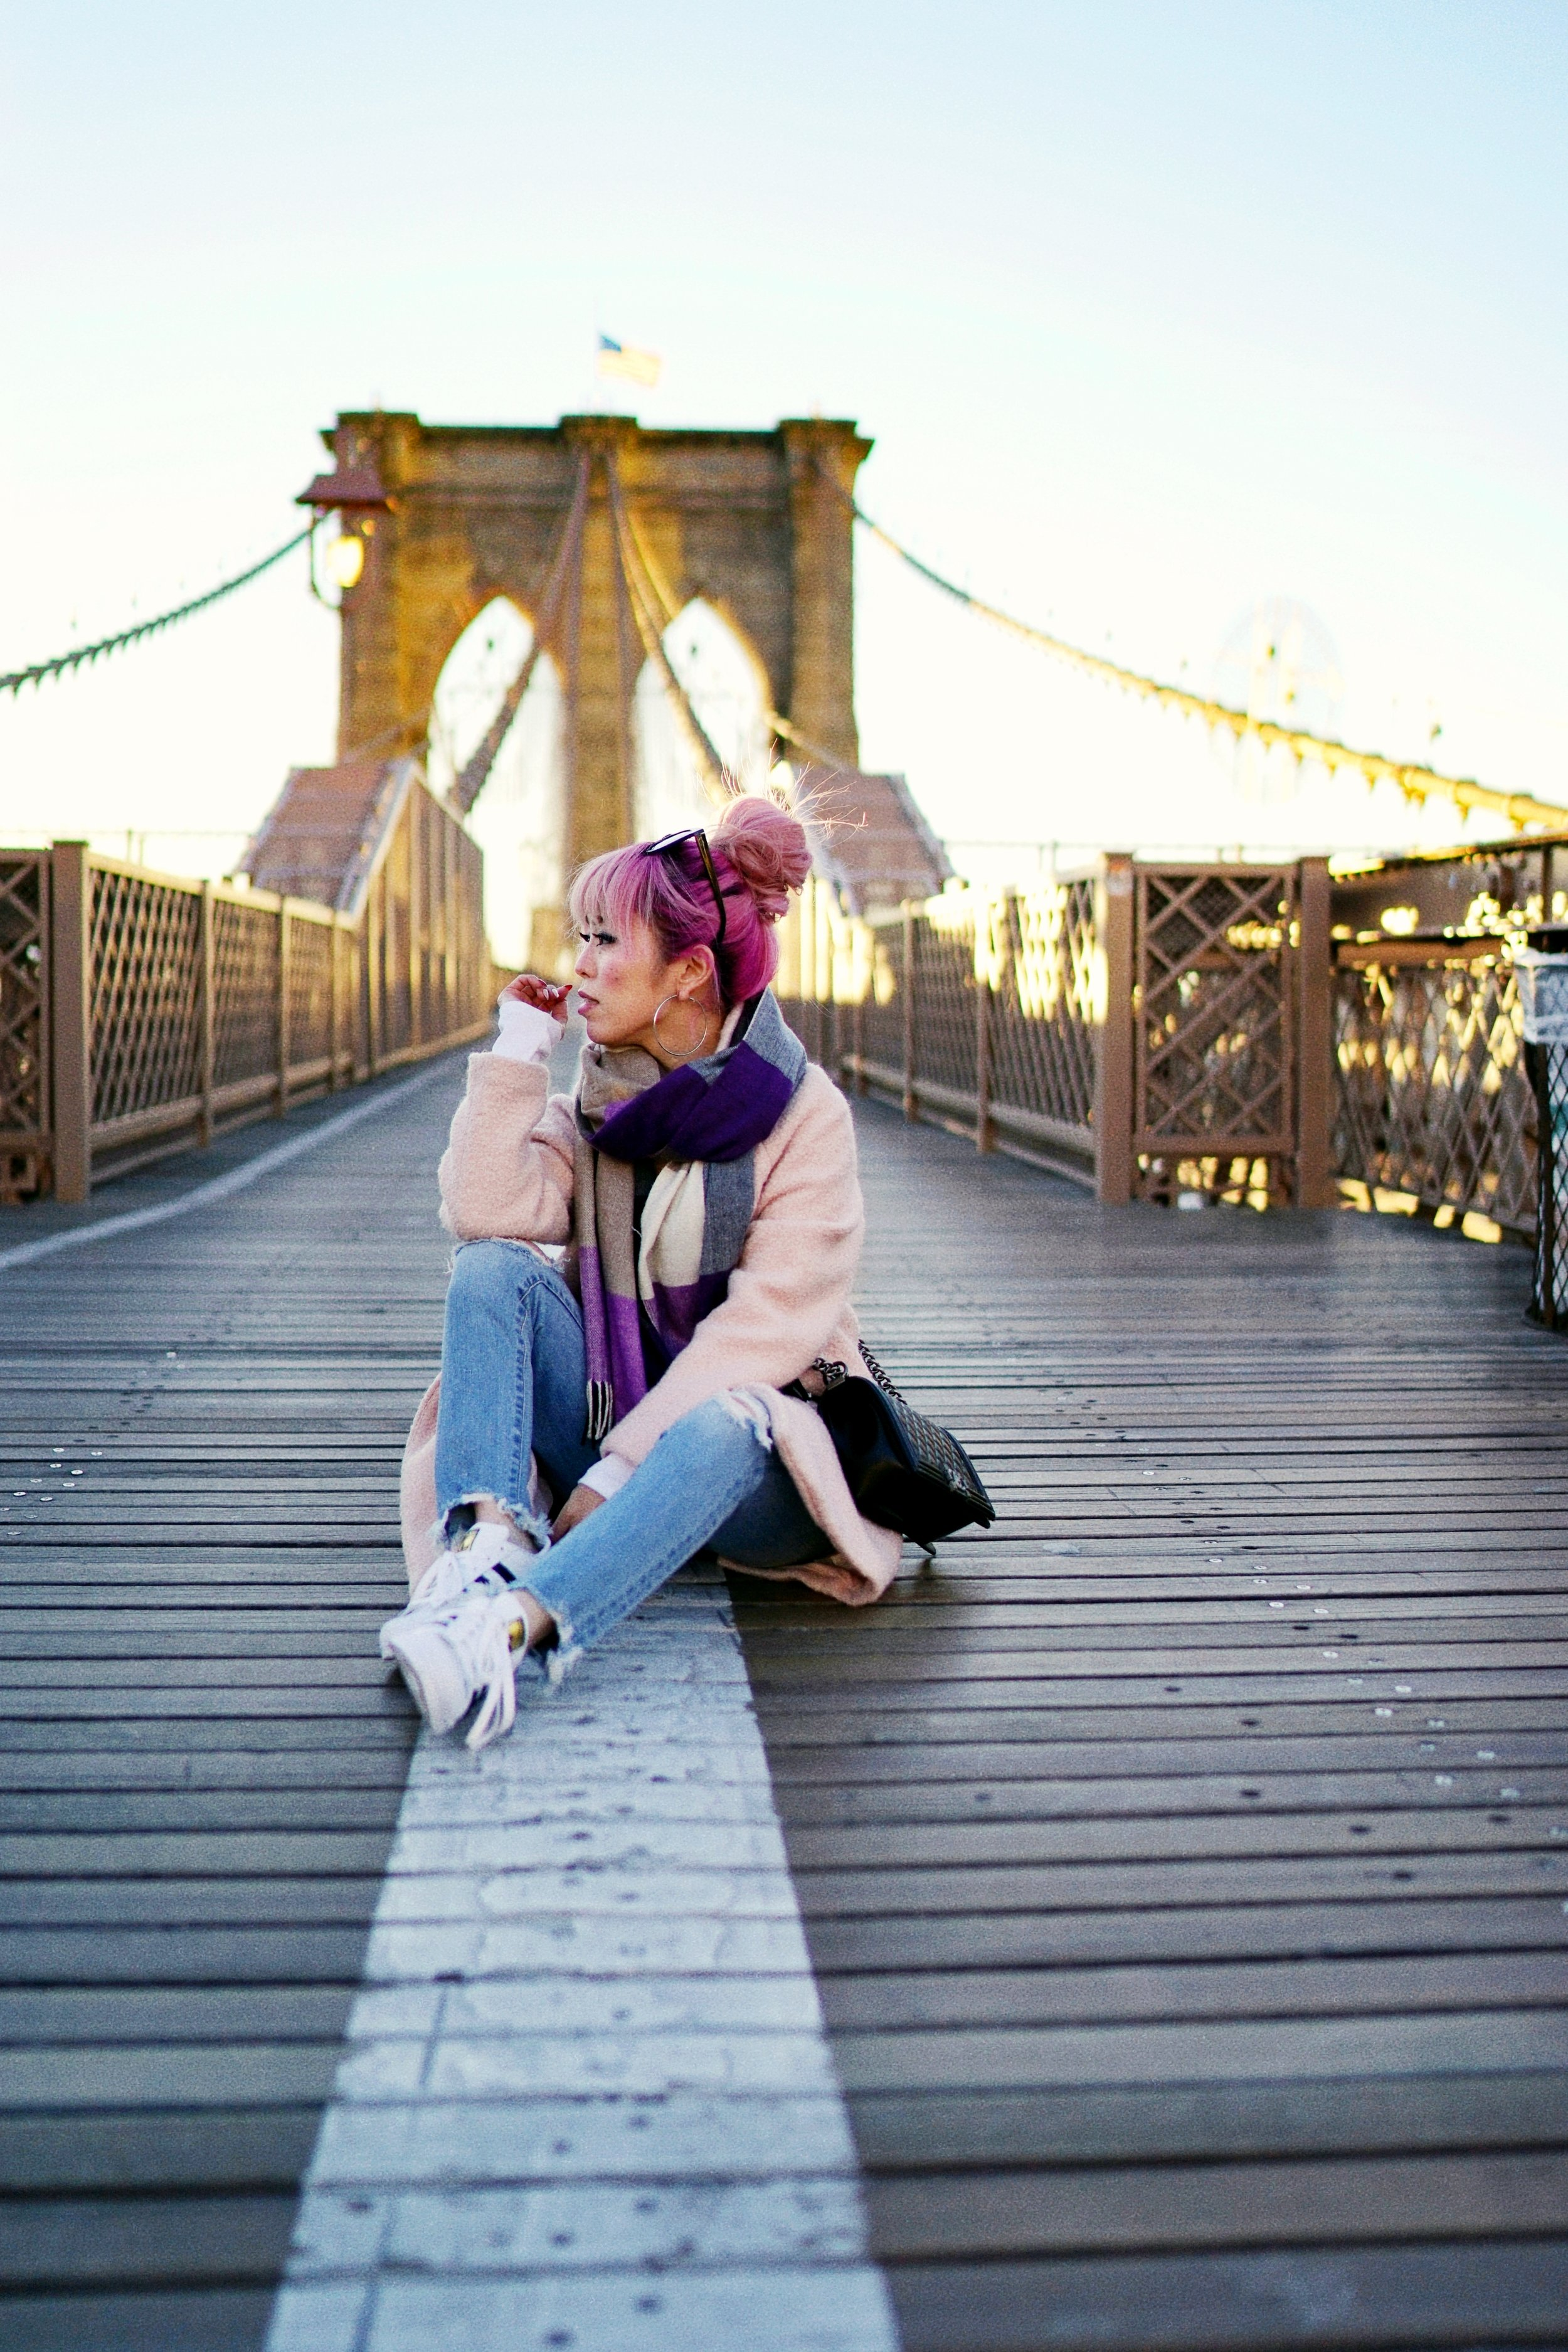 GAP Scarf-Zara pink coat-MOUSSY- frayed hem jeans- CHANEL Lambskin Quilted Medium Boy Flap Black-Adidas Superstar Shoes-Urban Outfitters Sunglasses-Aika's Love Closet-Sealtle fashion style blogger from japan-pink hair-brooklyn bridge-new york-city 7